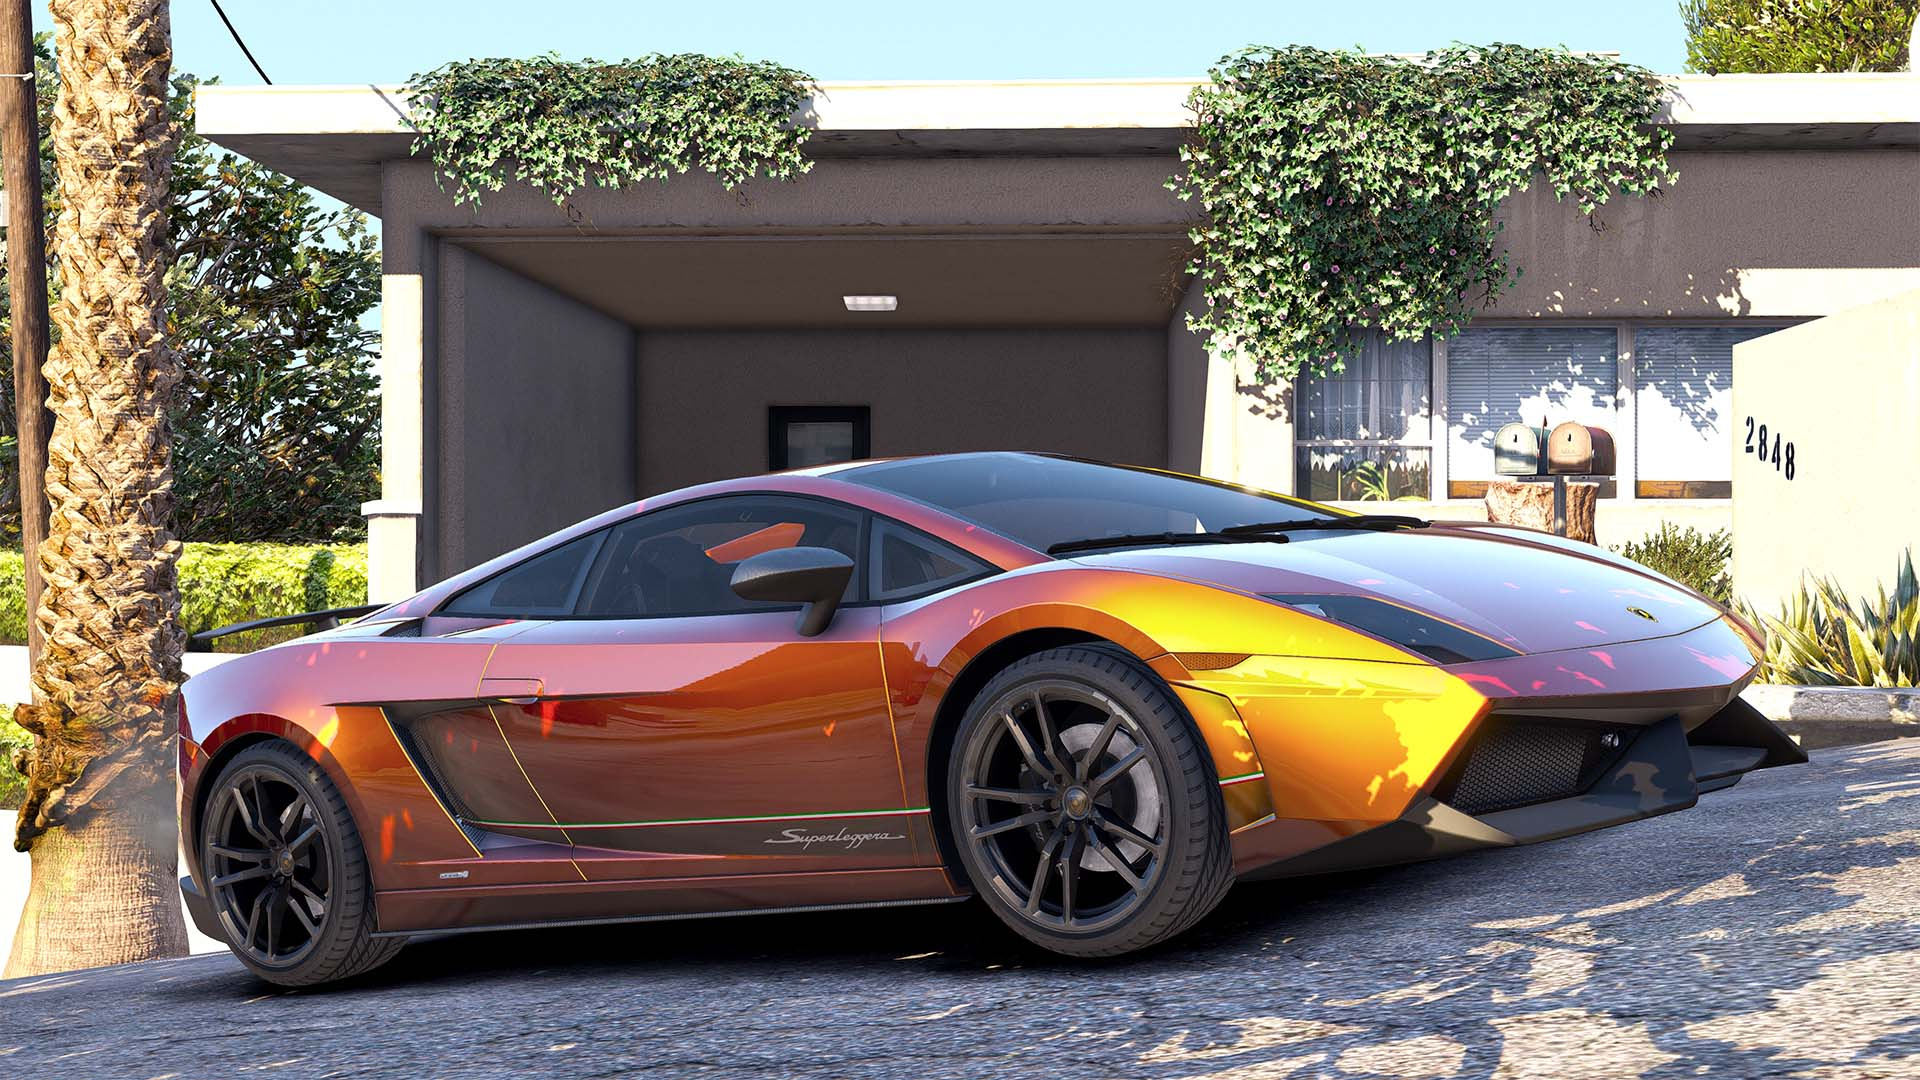 lamborghini gallardo lp570 4 superleggera 2011 add on replace animated template gta5. Black Bedroom Furniture Sets. Home Design Ideas